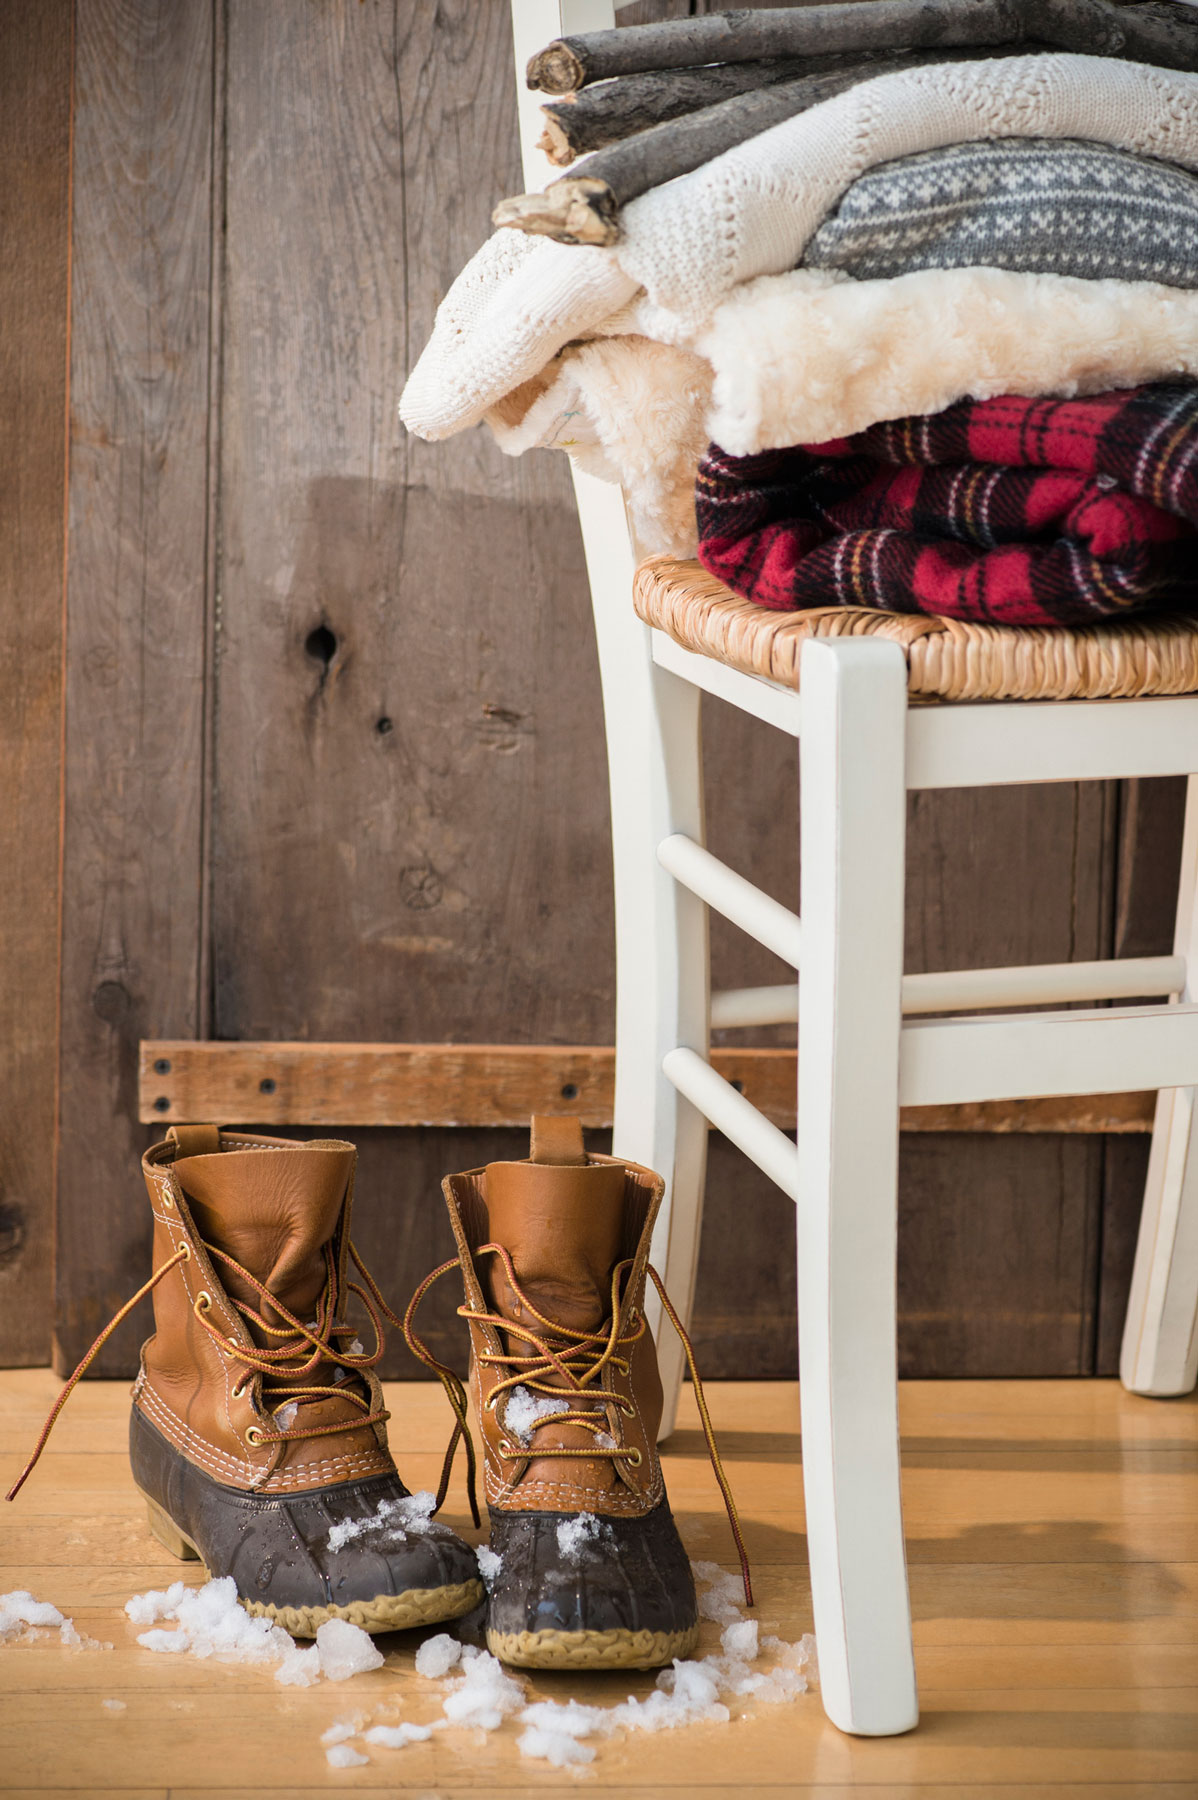 Hardwood floor care tips for winter - winter boots